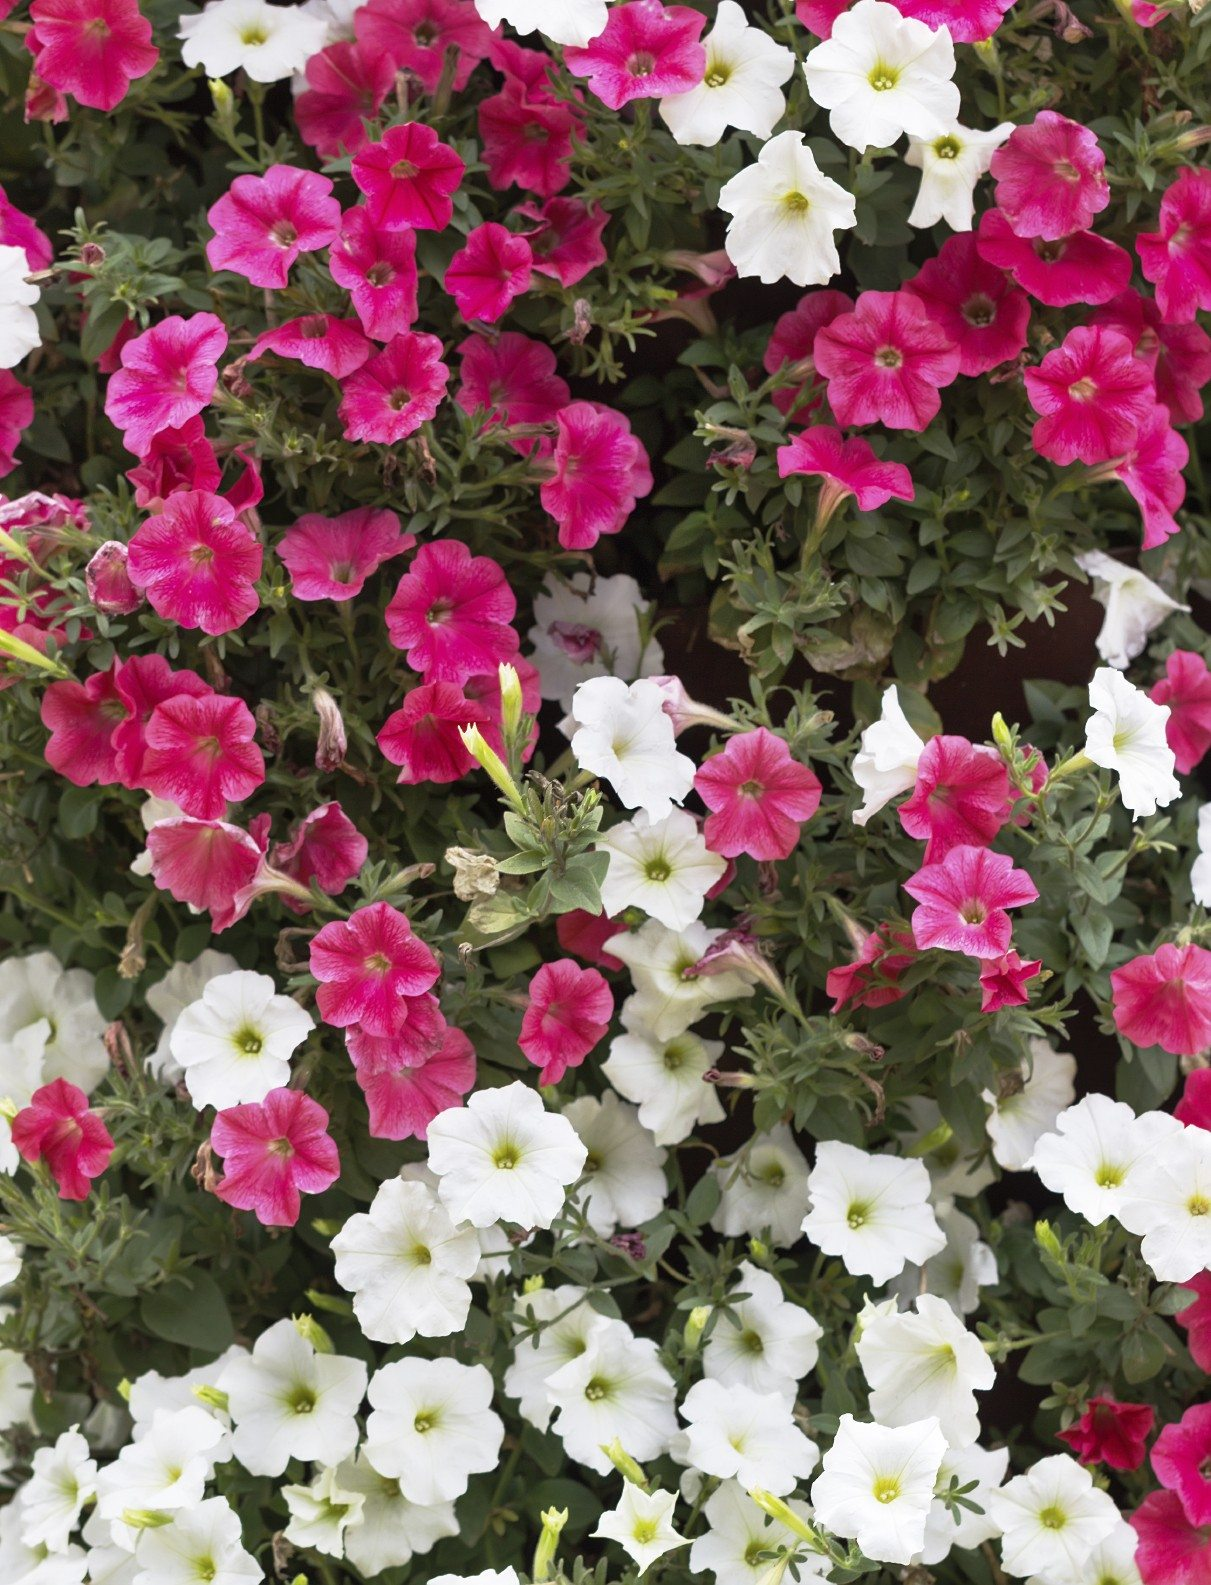 Different Types of Petunias Learn About The Varieties Petunias